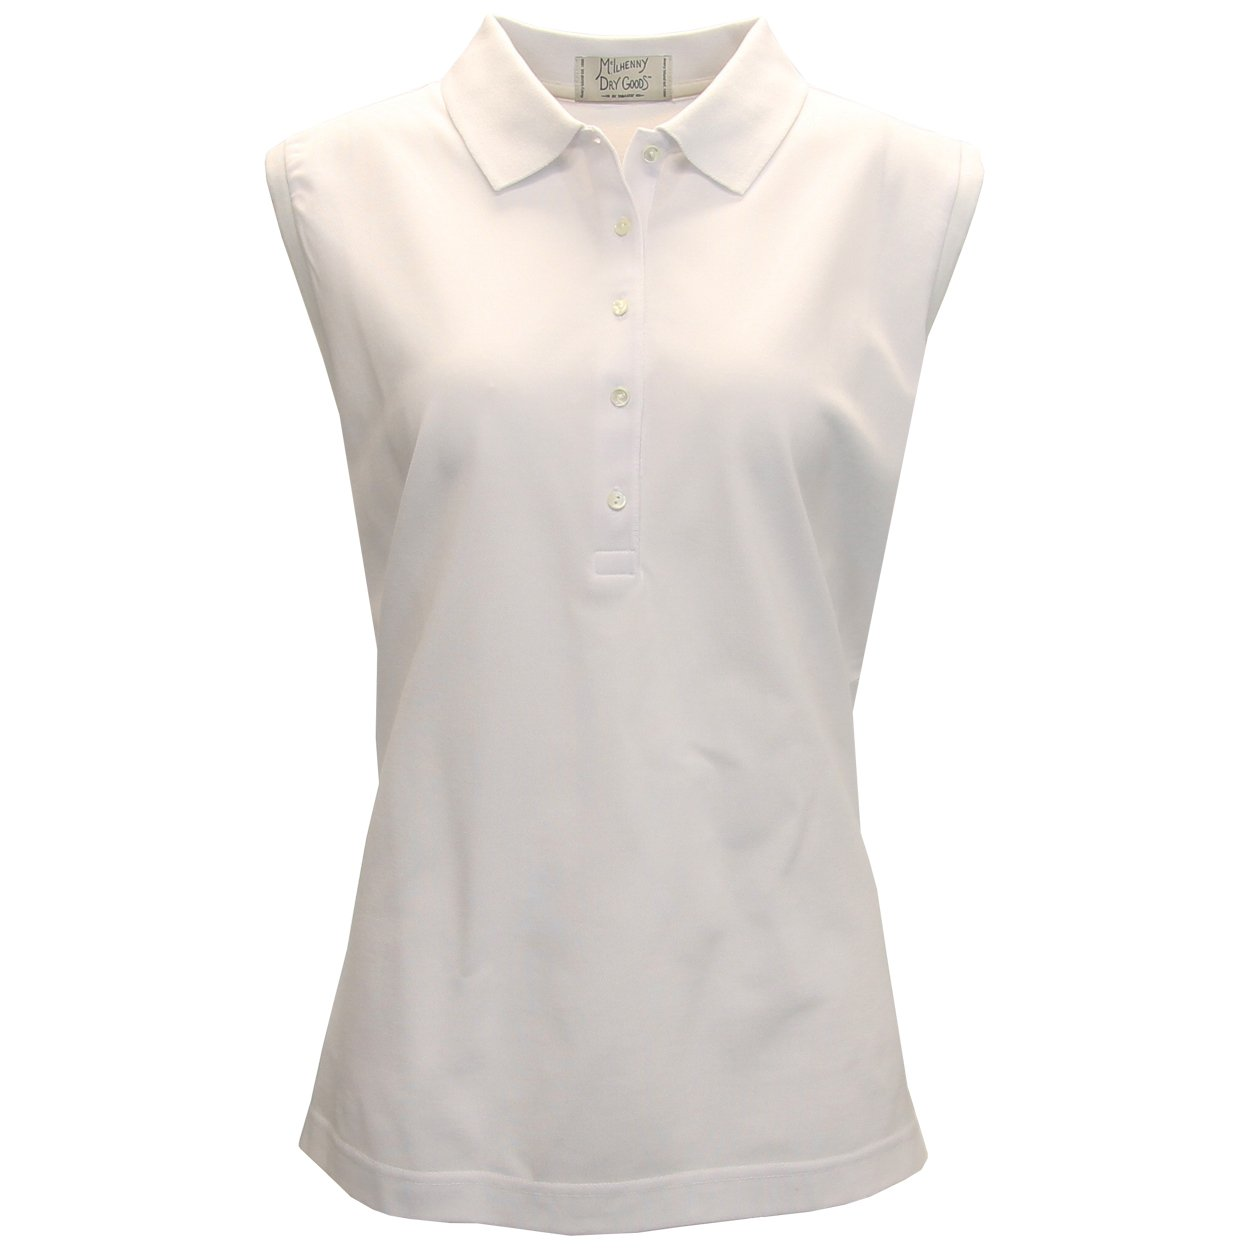 McIlhenny Women's Sleeveless Solid Pique Polo Golf Shirt, Large White